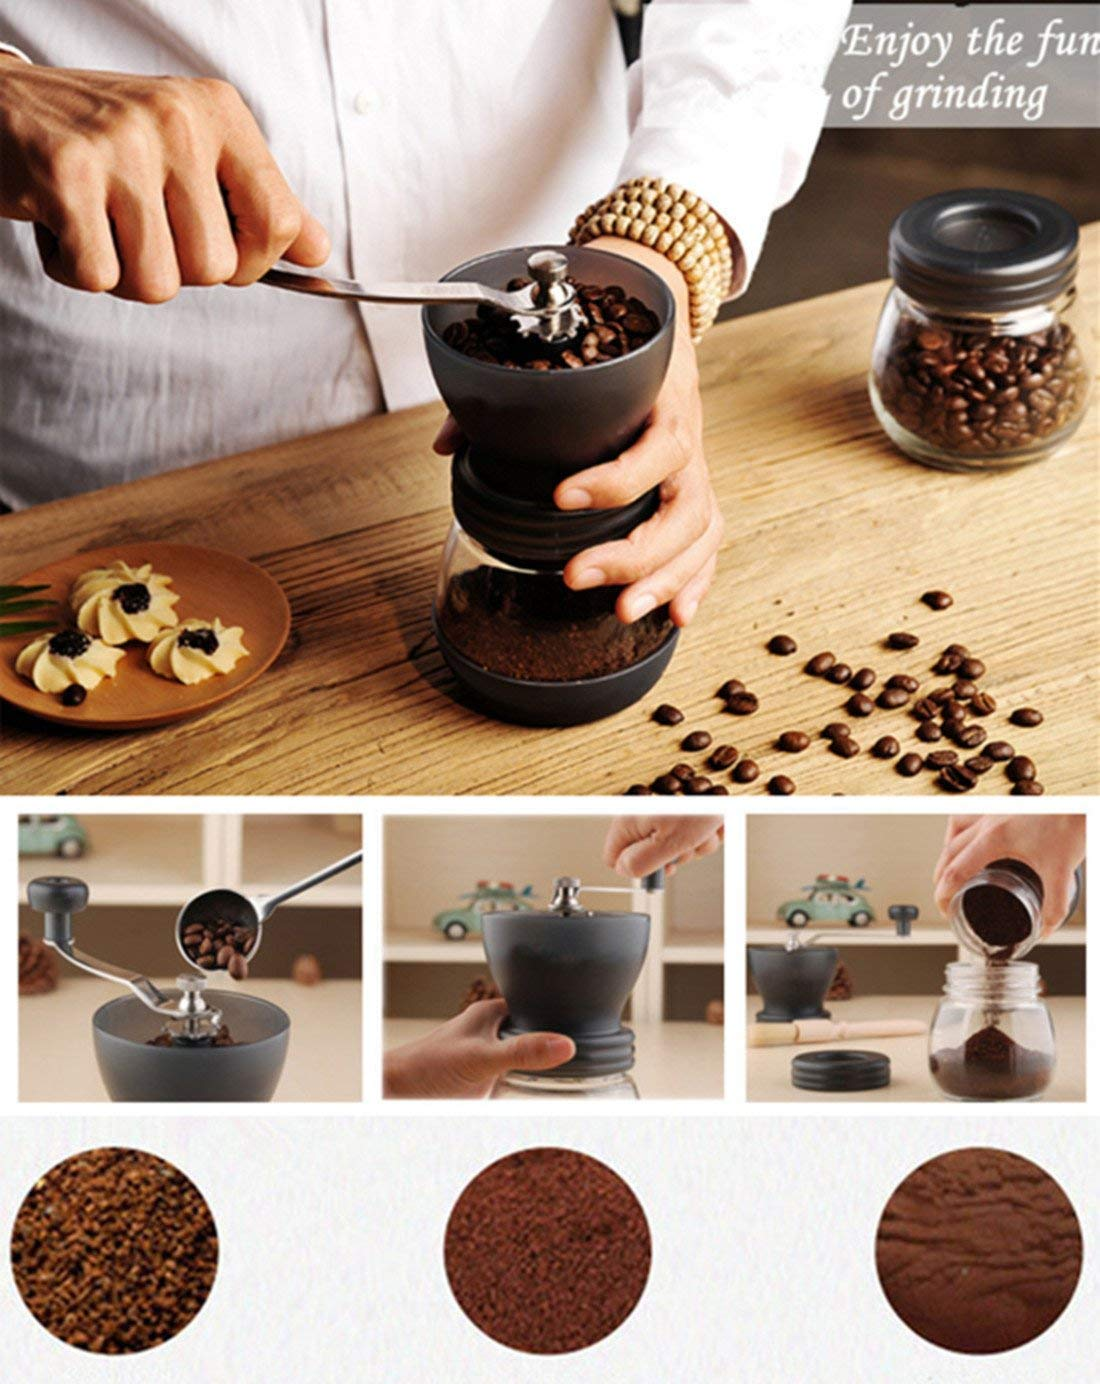 Angker Manual Coffee Grinder Adjustable Ceramic Burr Manual Coffee Grinder with Glass Storage Tank for Espresso//Pour Over//French Press//Turkish Coffee Brewing